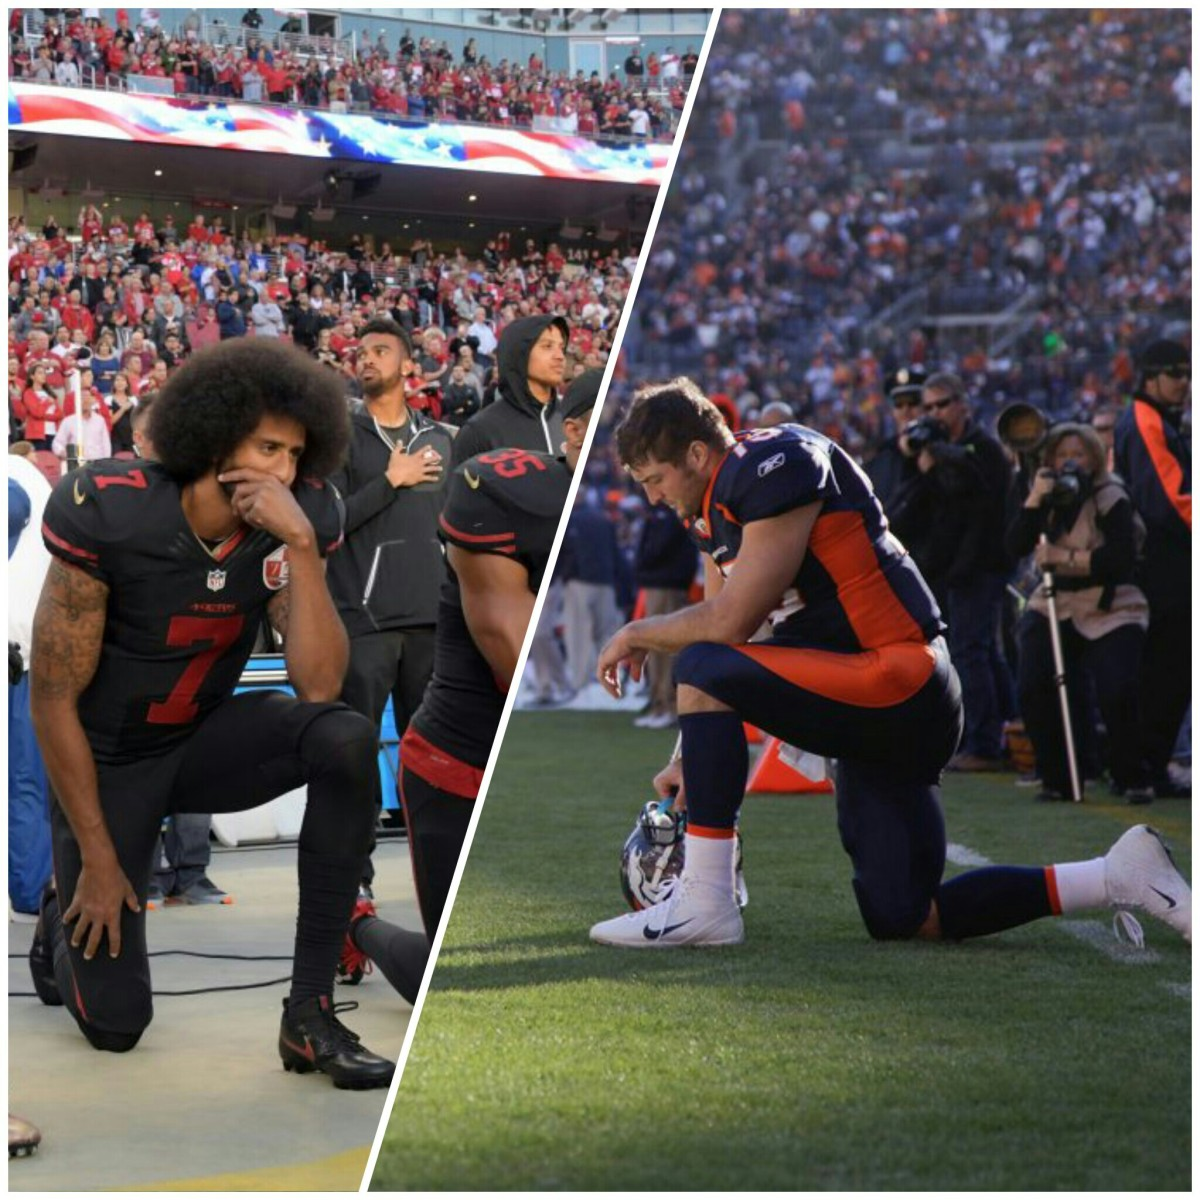 LIBERAL HYPOCRISY: Kneeling In Prayer Is Ridiculed, But Kneeling In Protest Is Revered